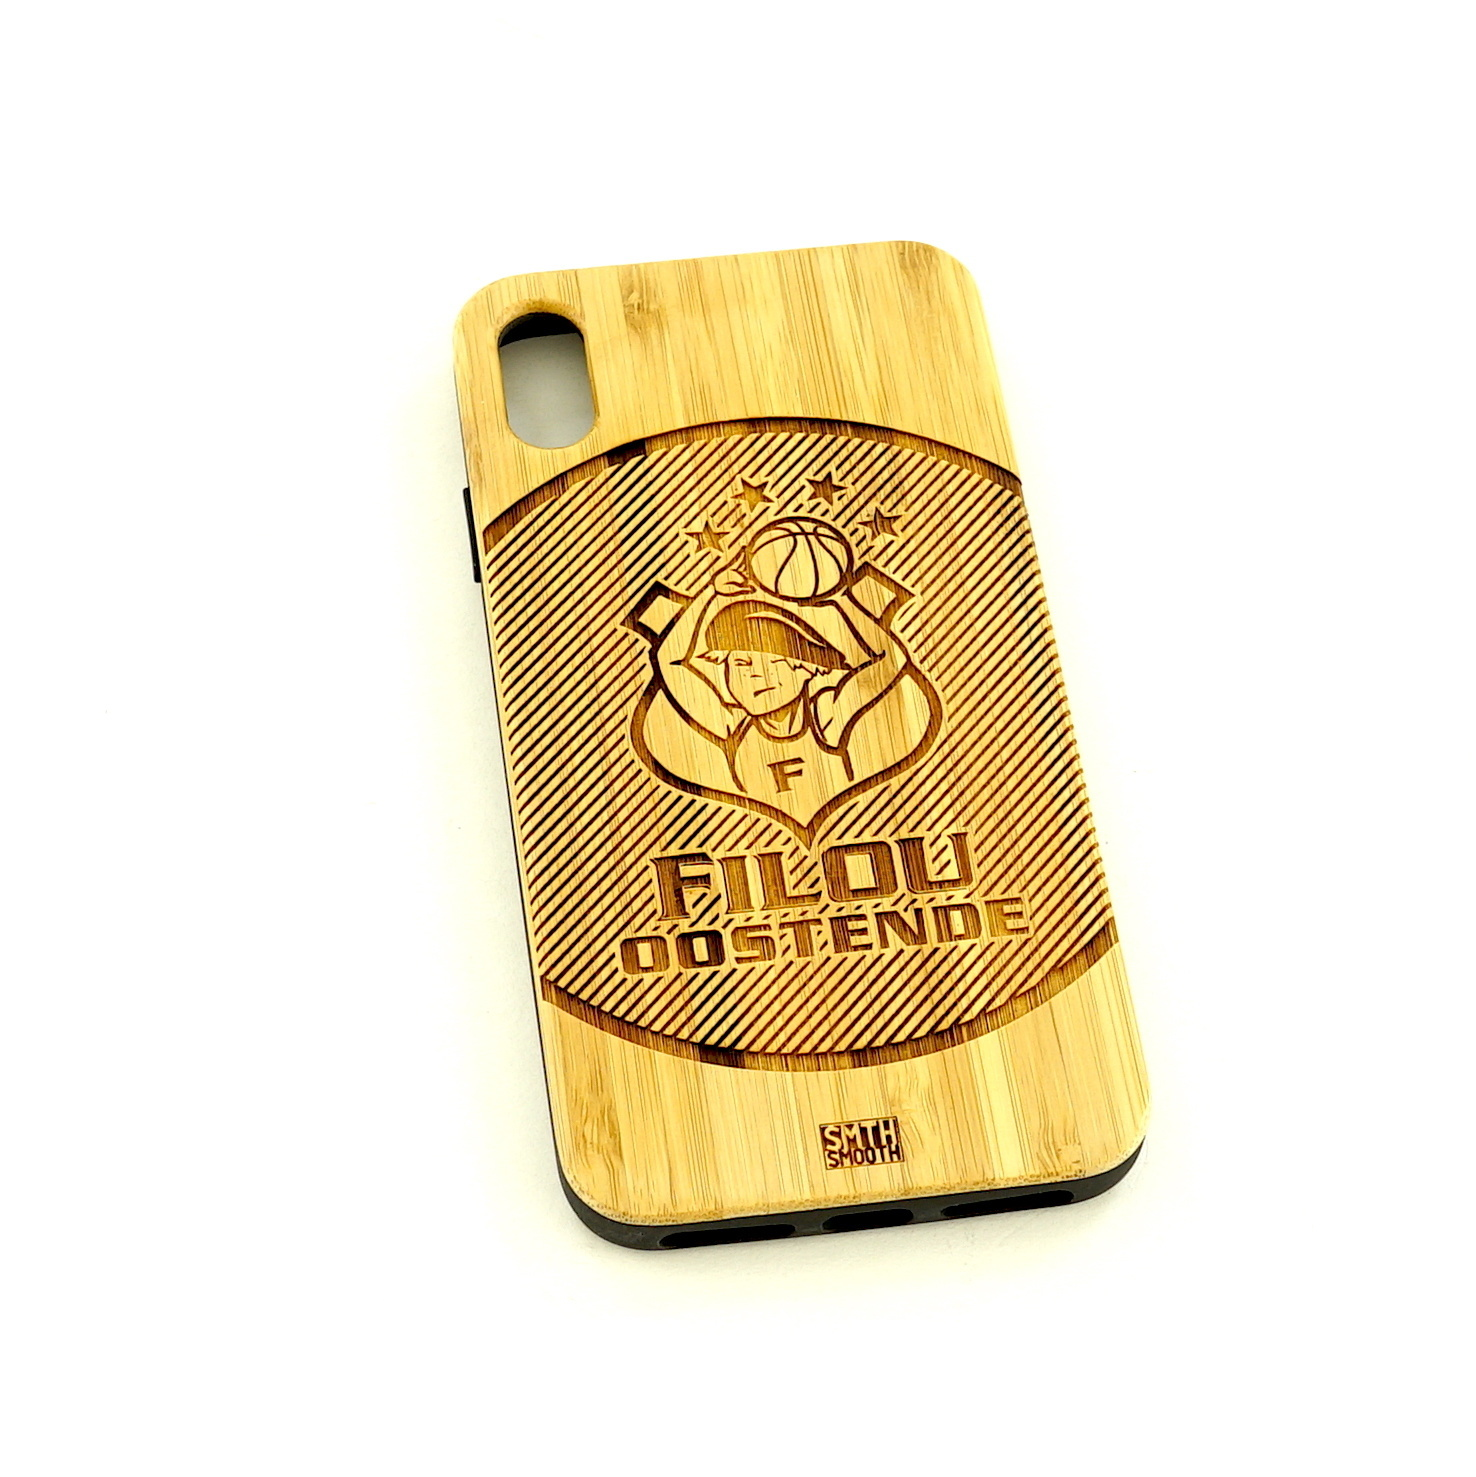 Topfanz Phone Cover light wood Filou Oostende